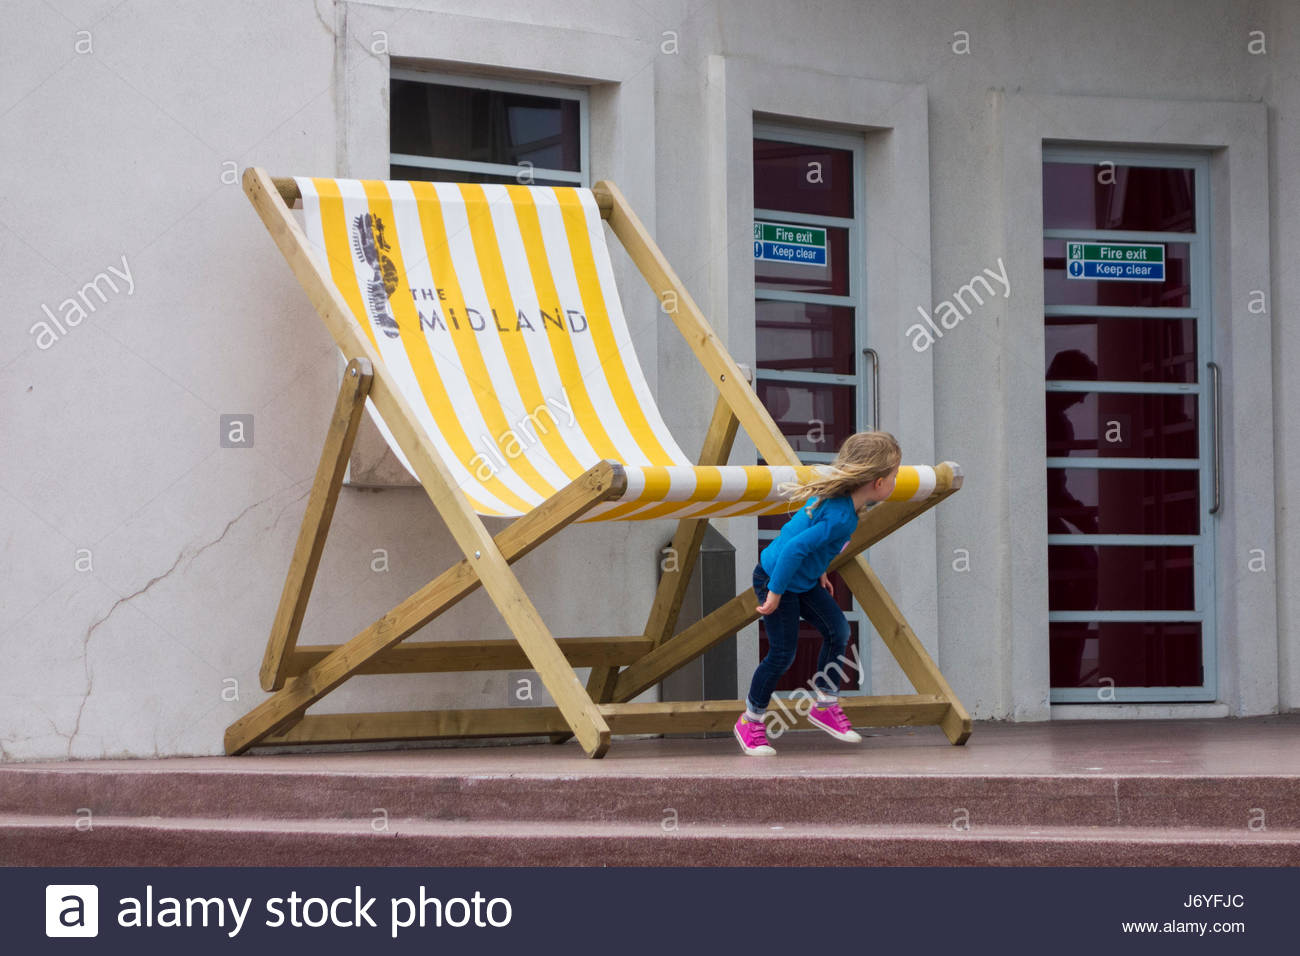 A young child plays next to the oversize deckchair at the Midland Hotel, Morecambe - Stock Image